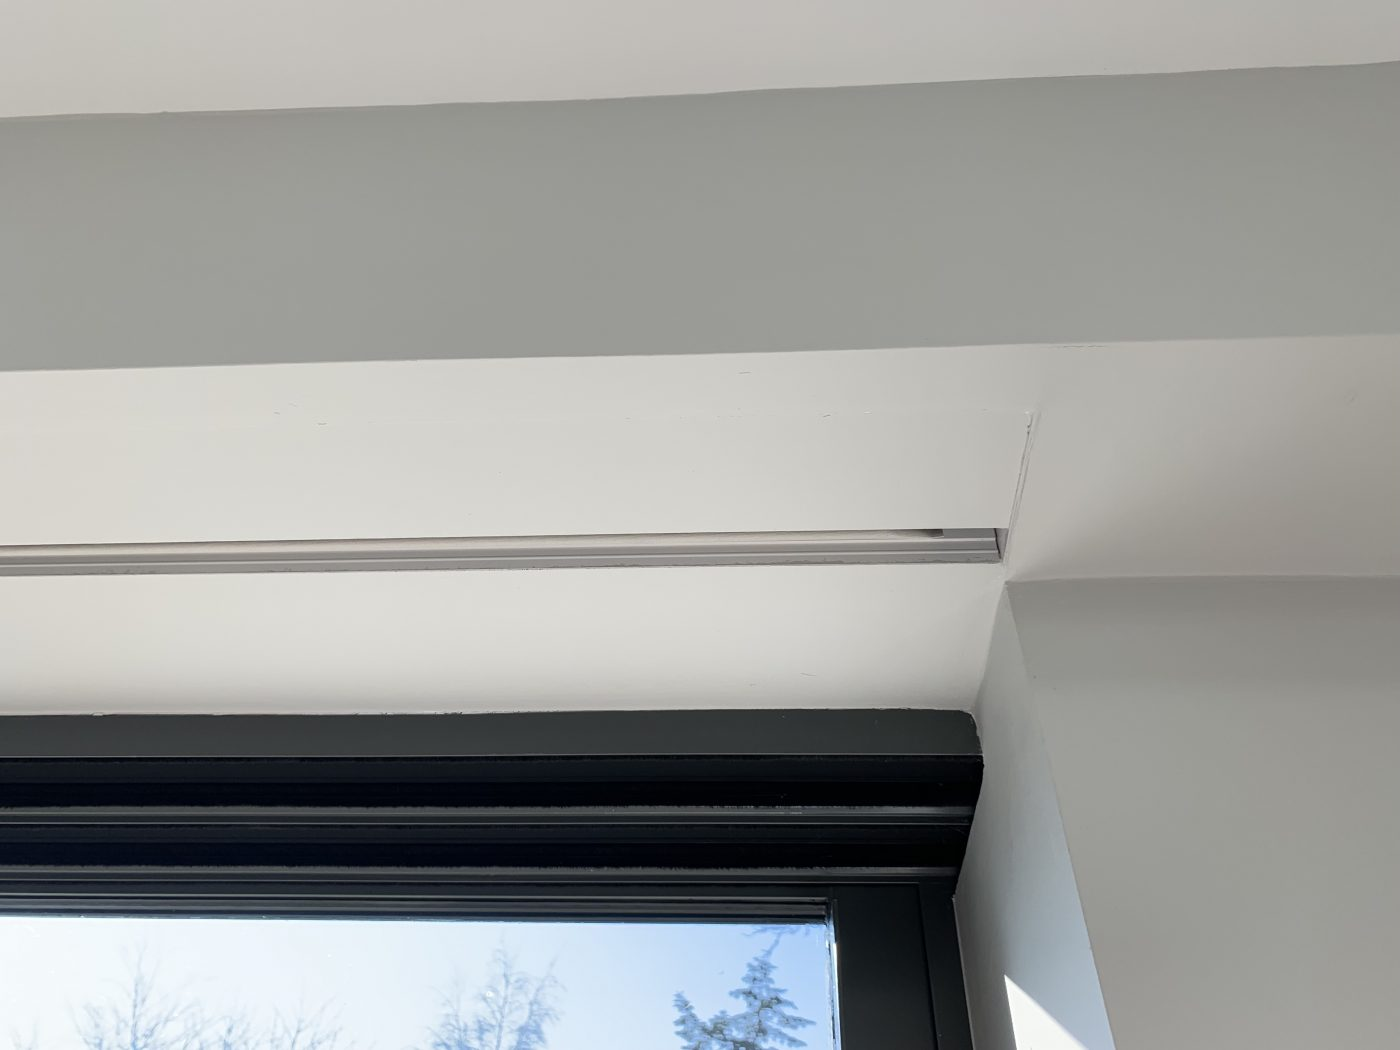 Hidden Electric Blinds For Bifold Doors - The Electric Blind Company